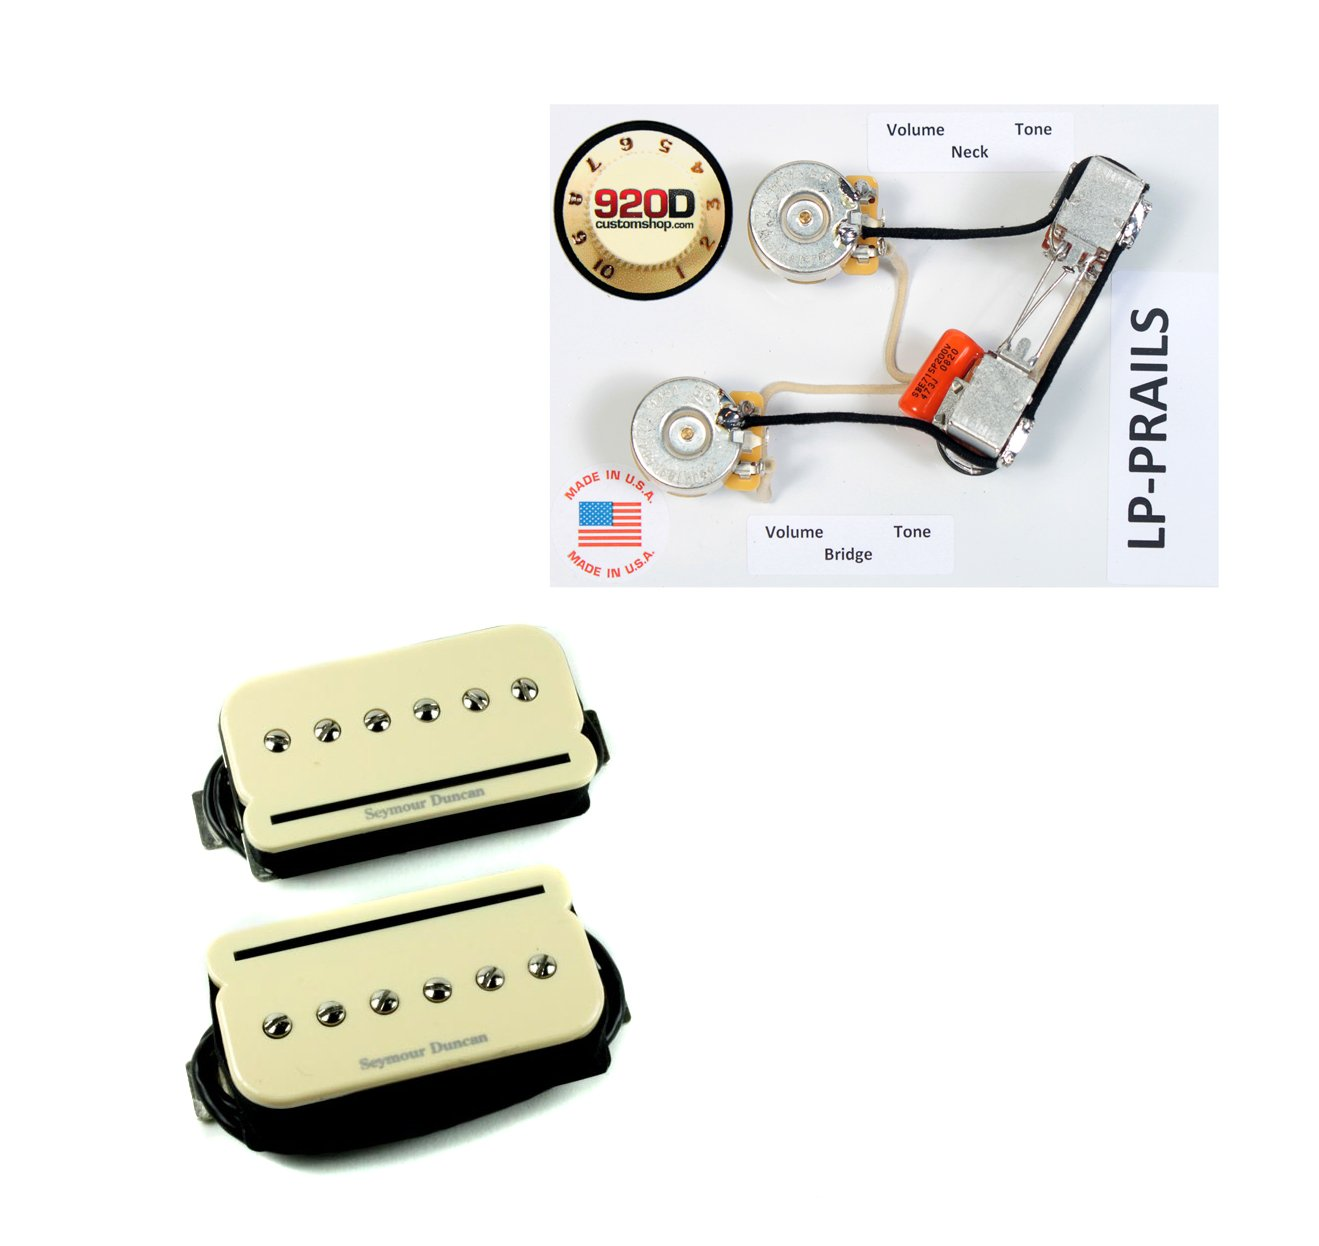 Seymour Duncan Shpr 1 P Rails Humbucker Pickup Set Whole Lotta Wiring Diagram Cream W Lp Prails Harness Musical Instruments